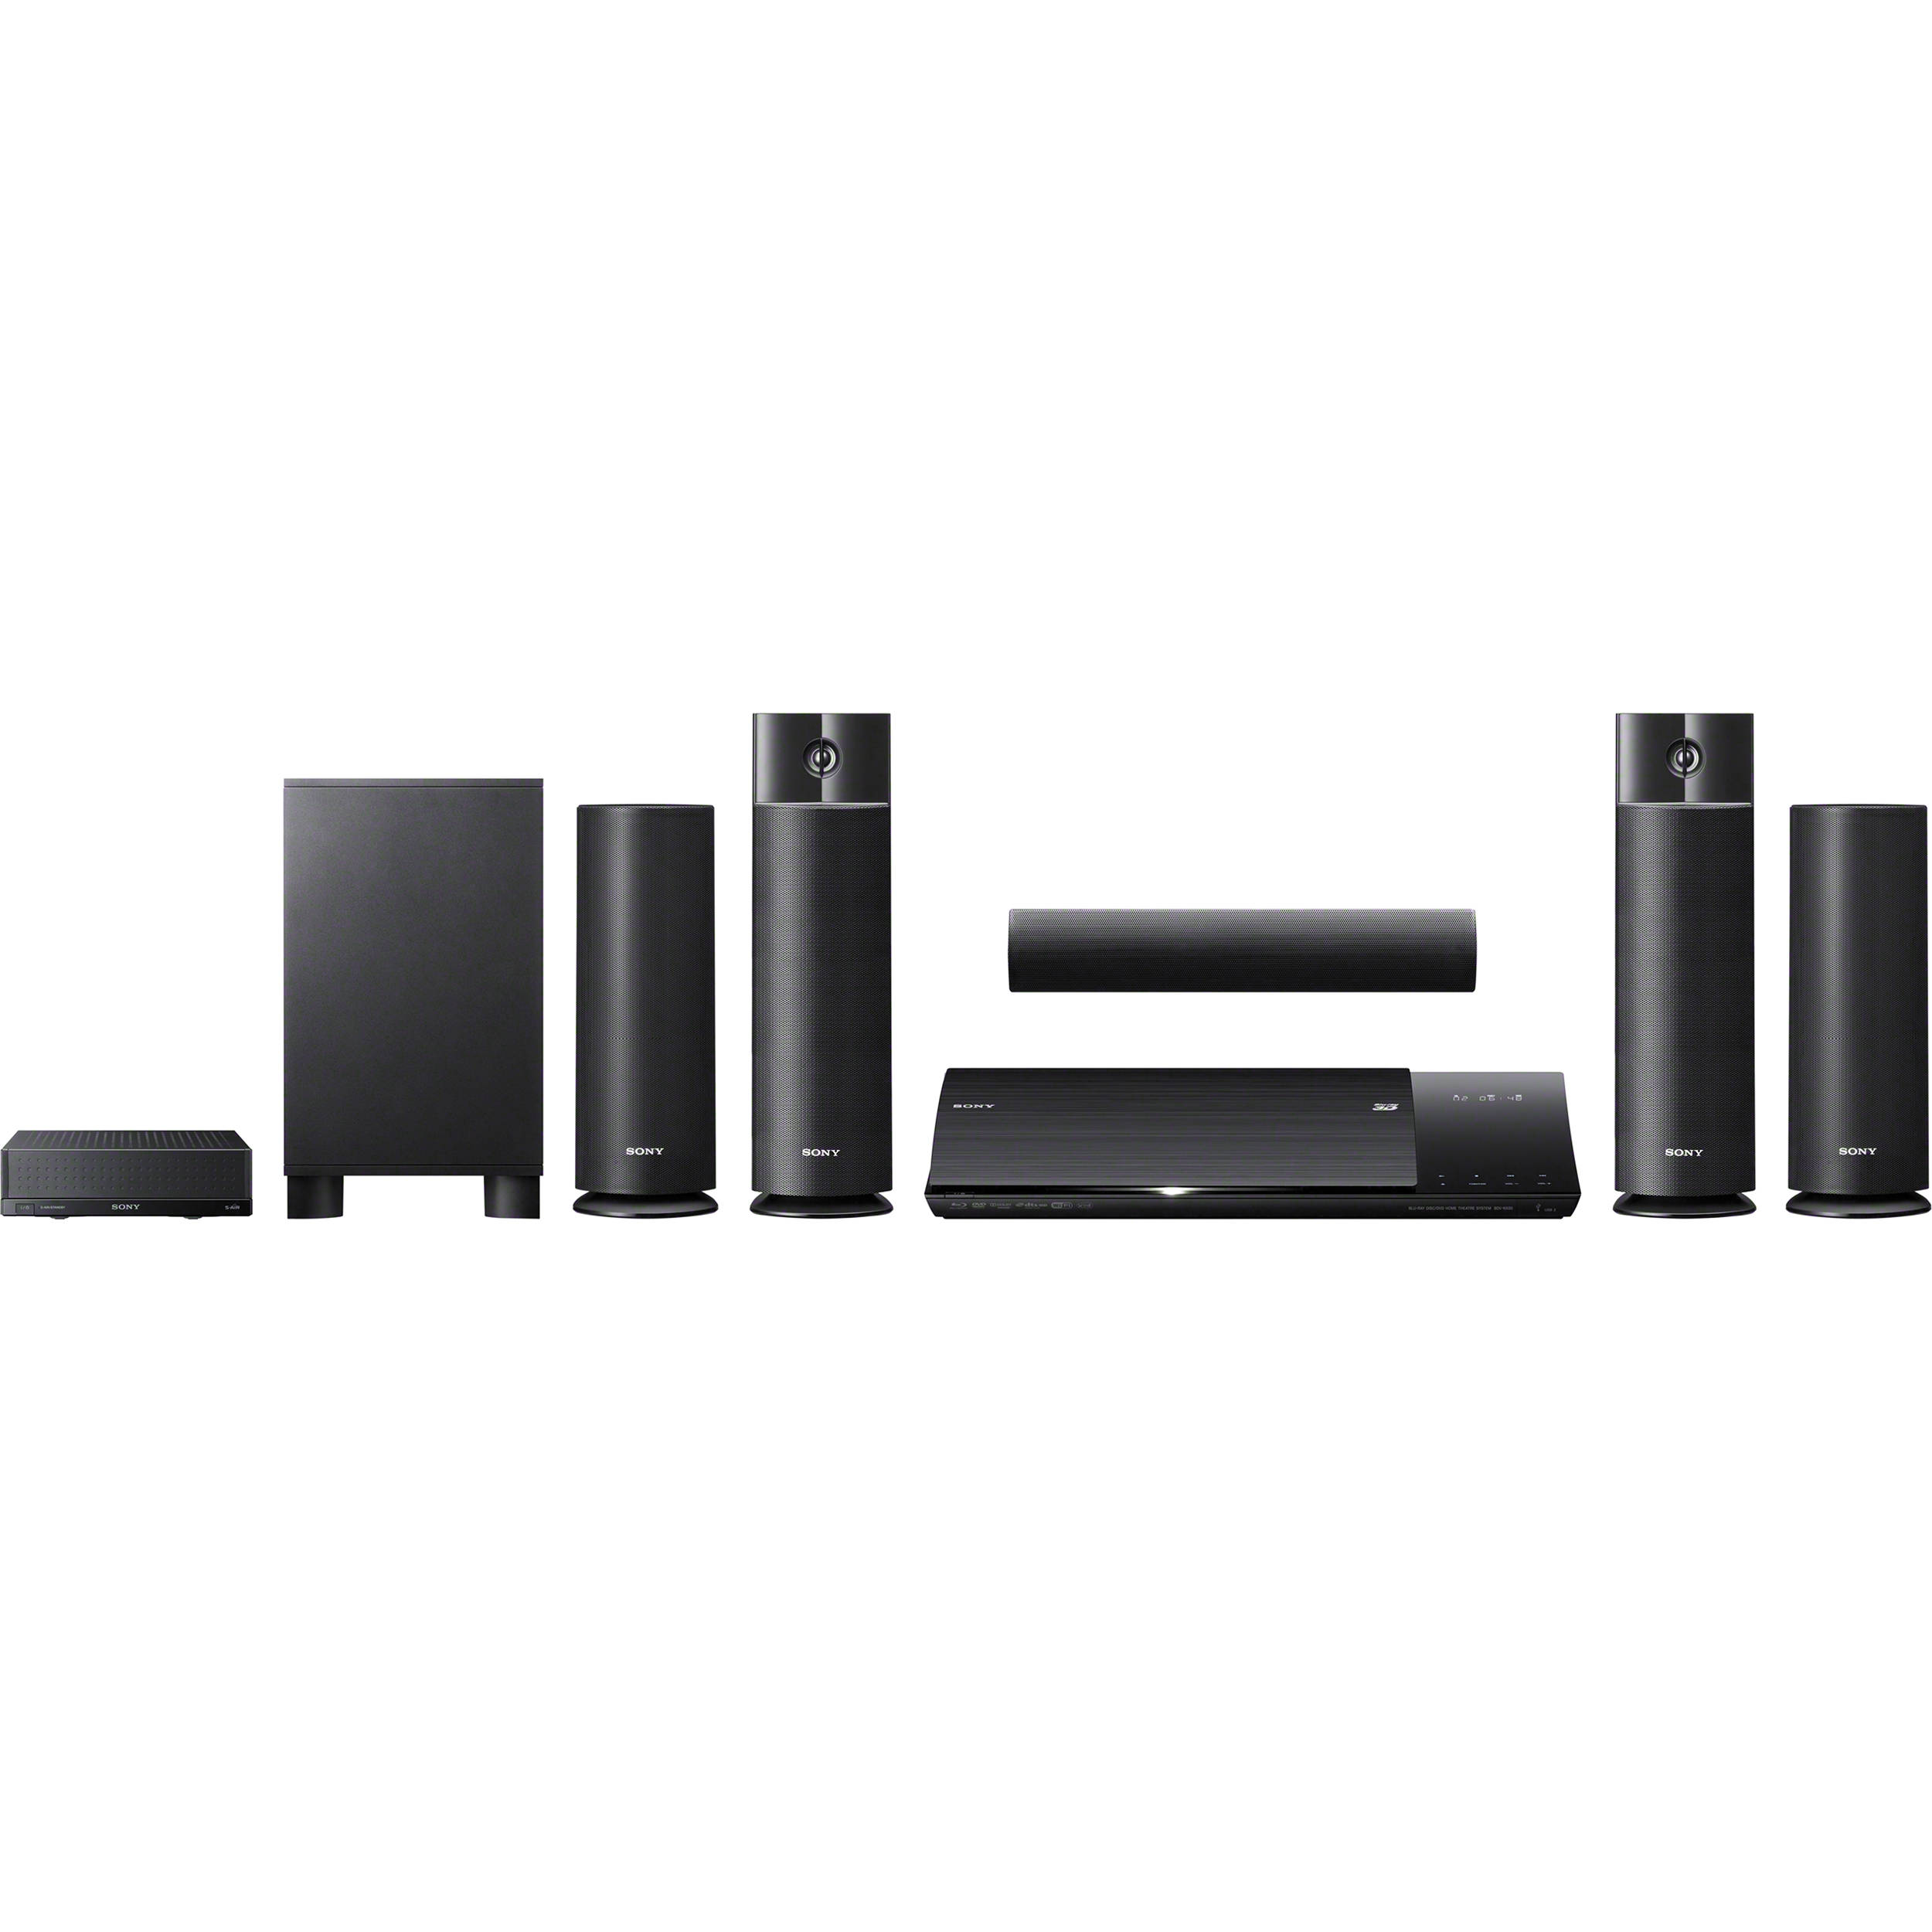 sony bdvn790w 3d blu ray home theater system bdvn790w b h. Black Bedroom Furniture Sets. Home Design Ideas